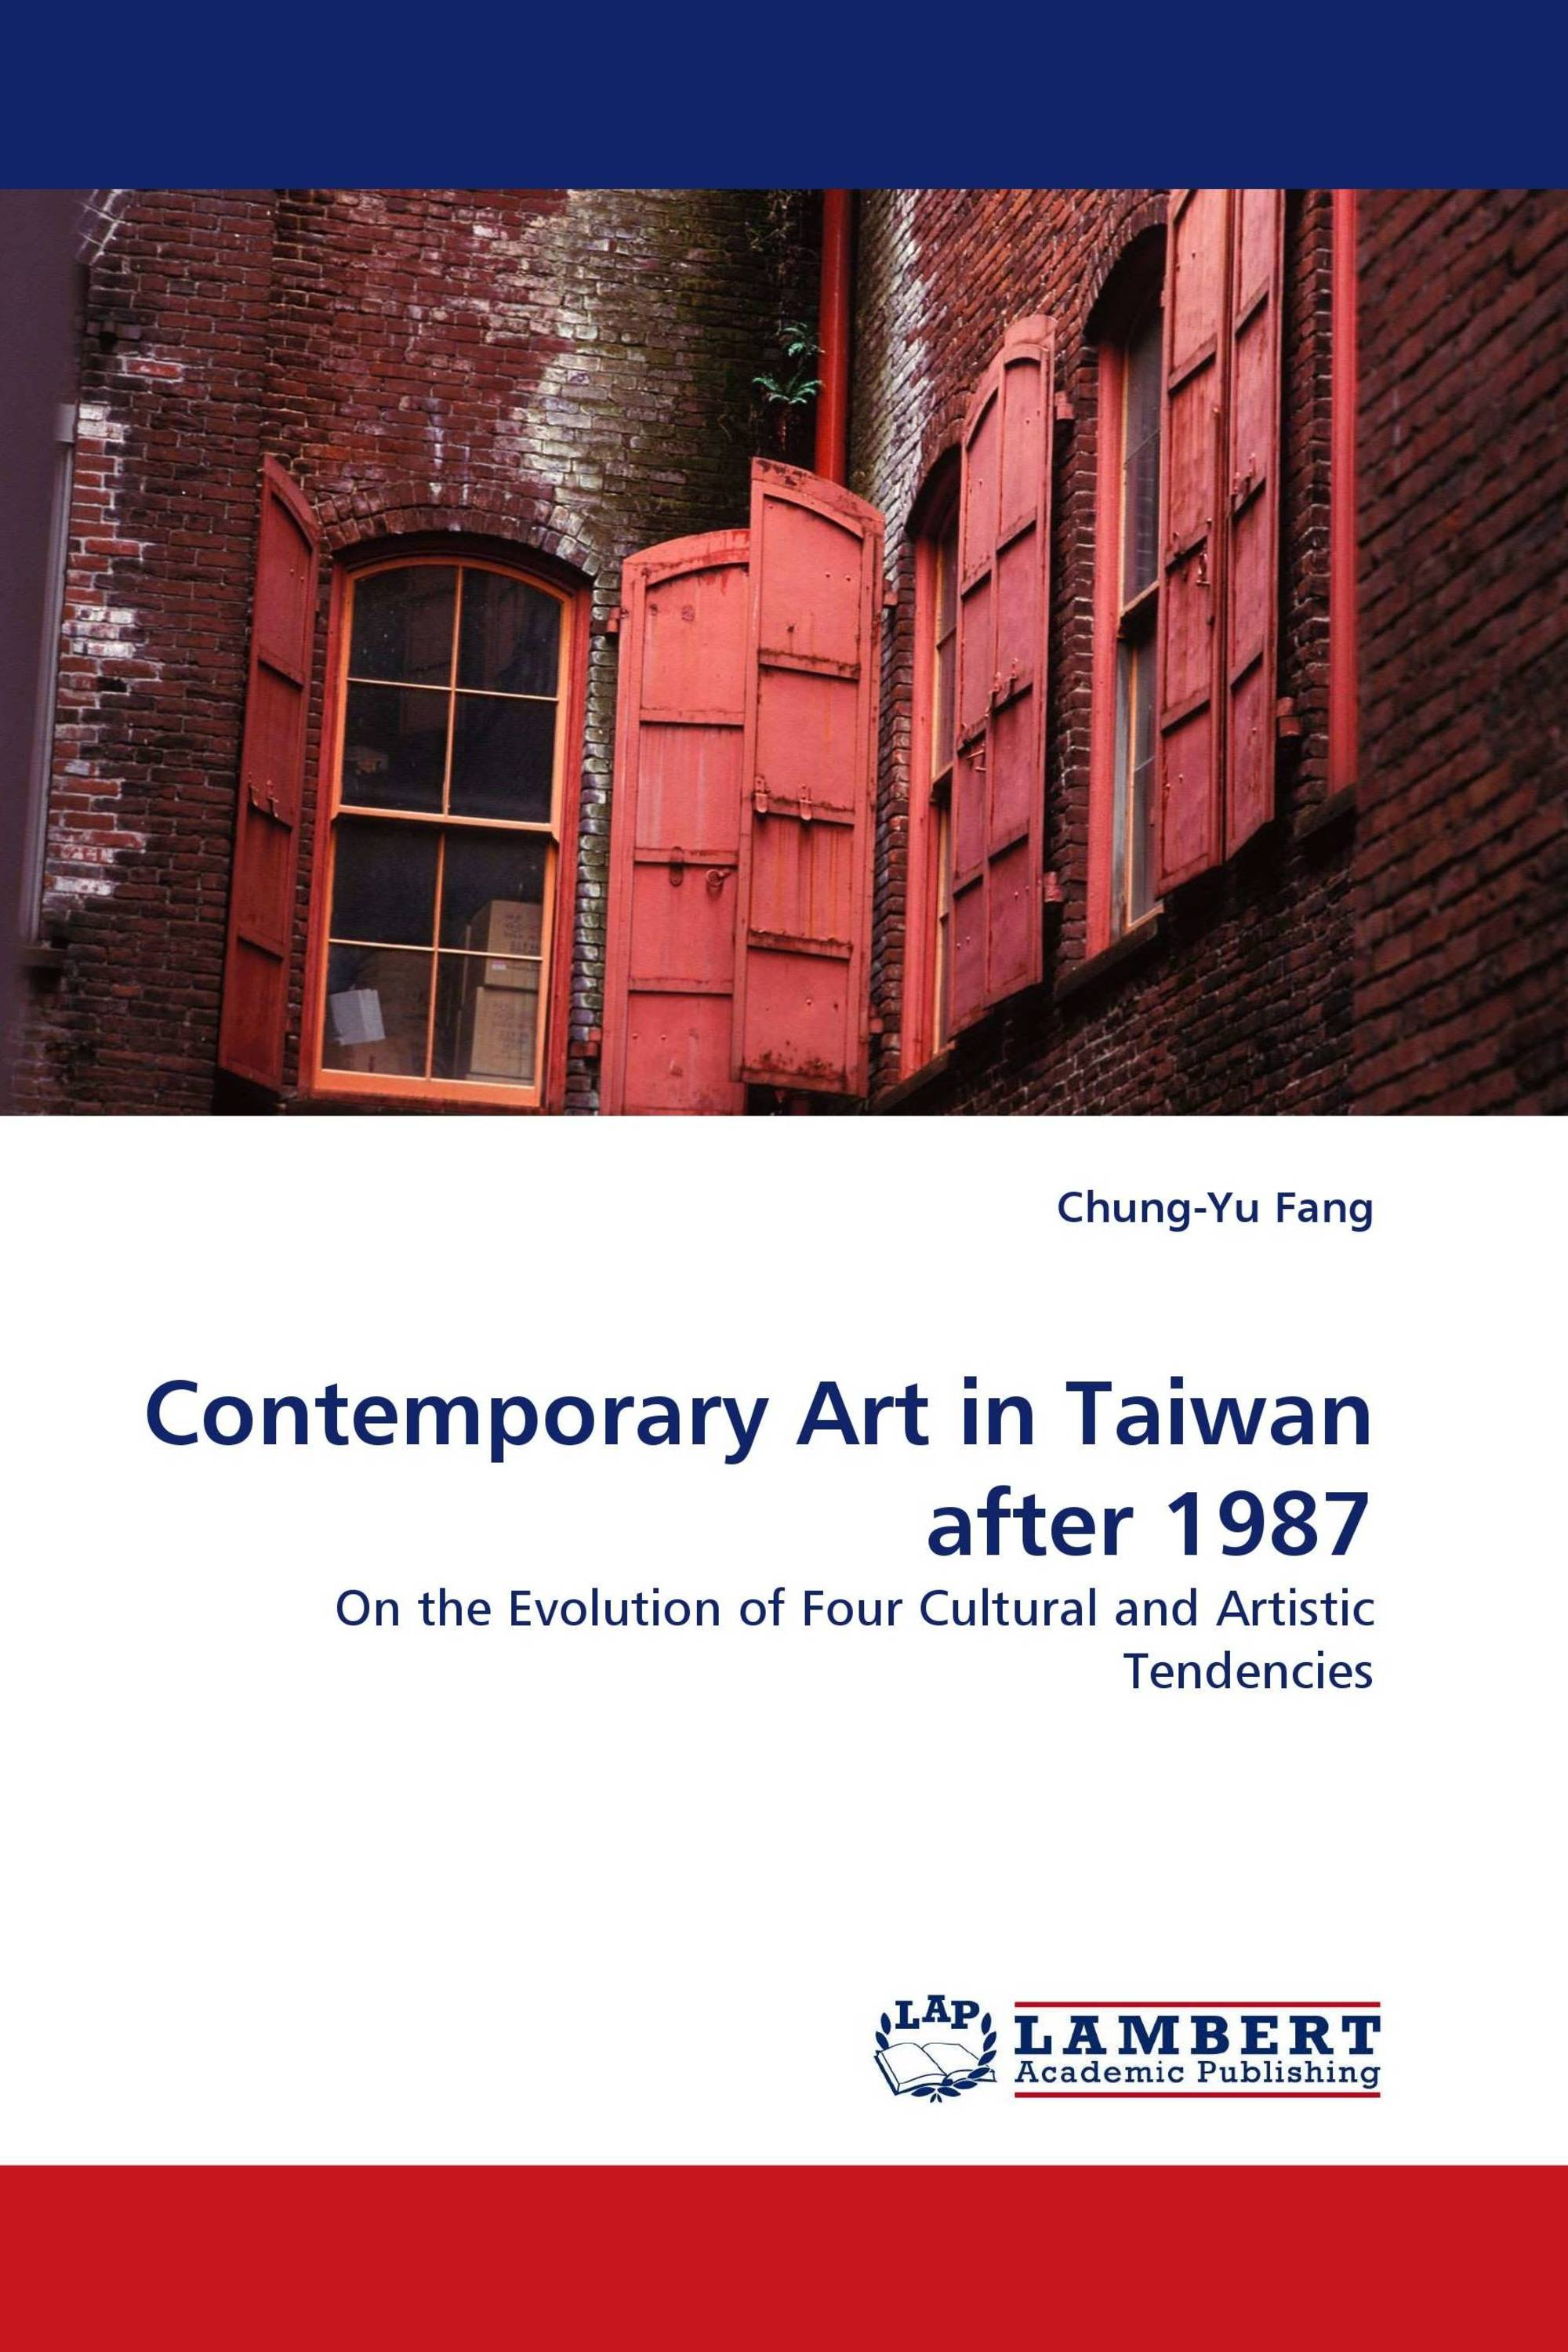 Contemporary Art in Taiwan after 1987